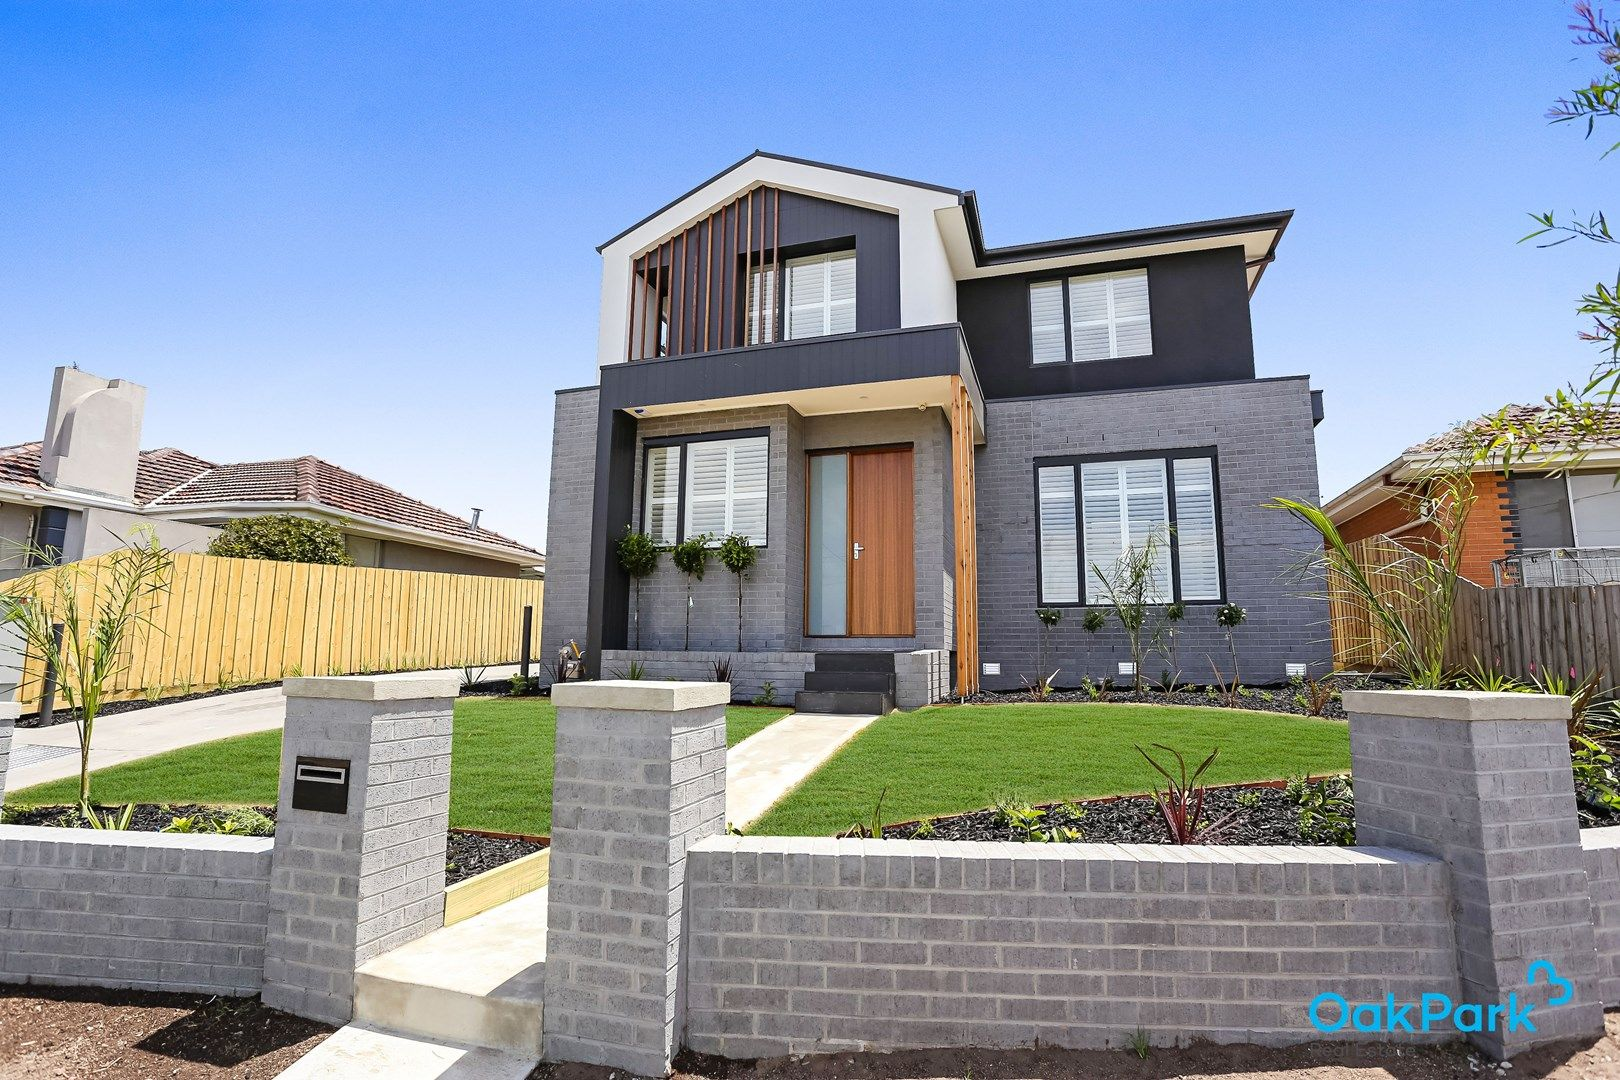 1/9 Arnold Court, Pascoe Vale VIC 3044, Image 0